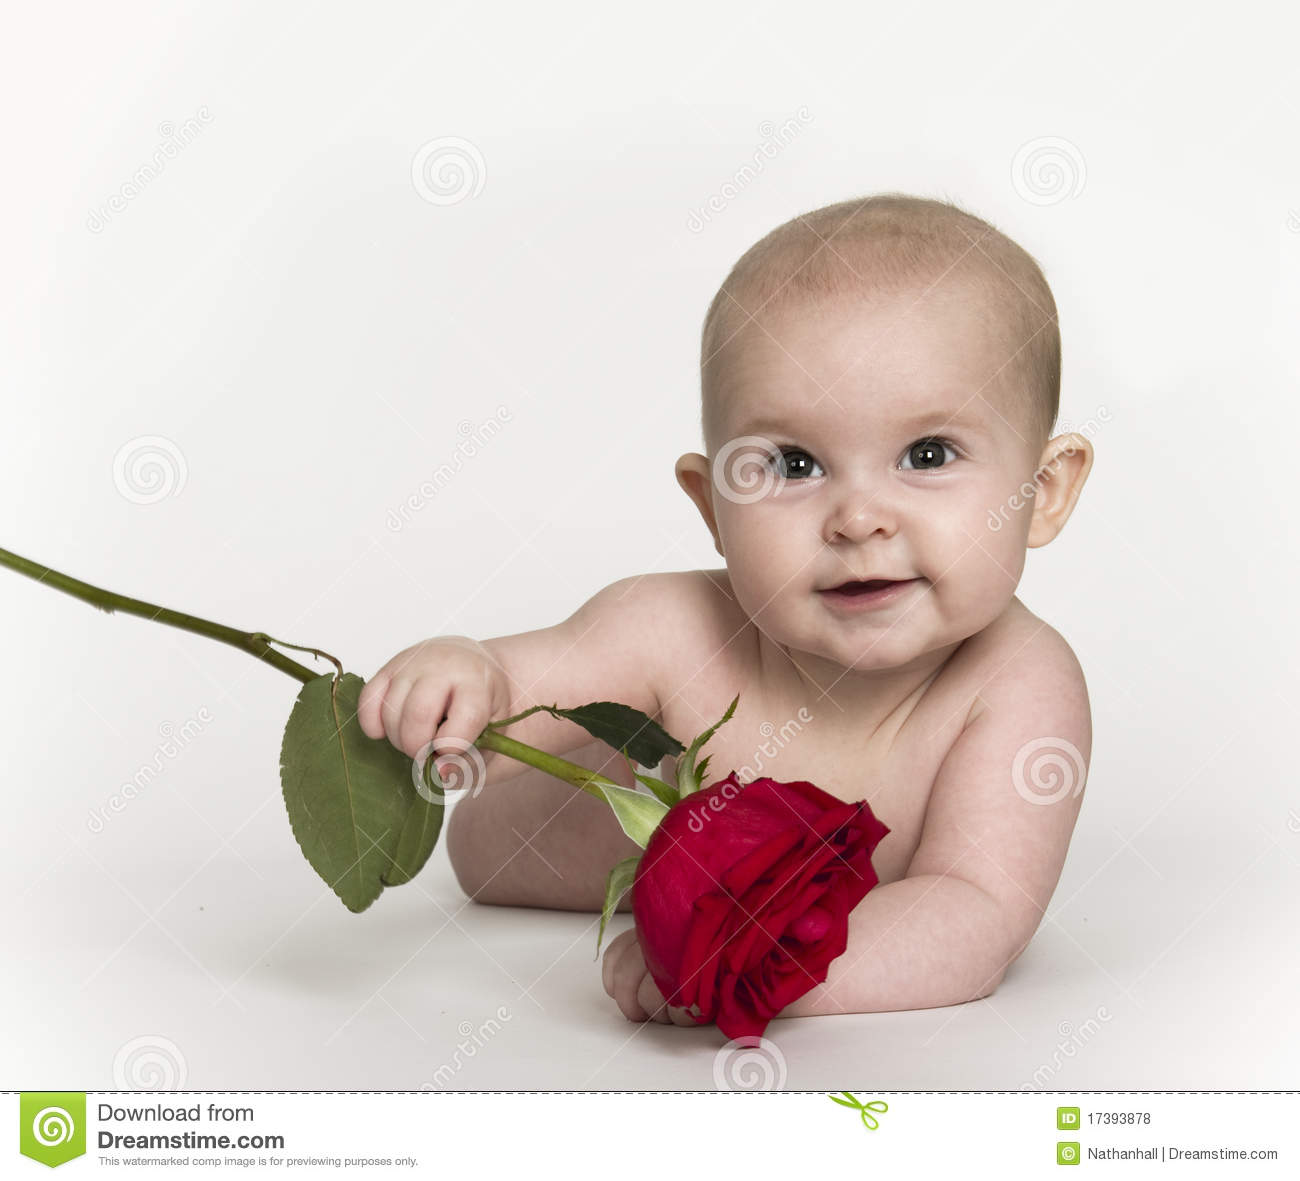 L Love U Bart U A Bby: Baby Holding Rose Stock Photo. Image Of Romantic, Smile